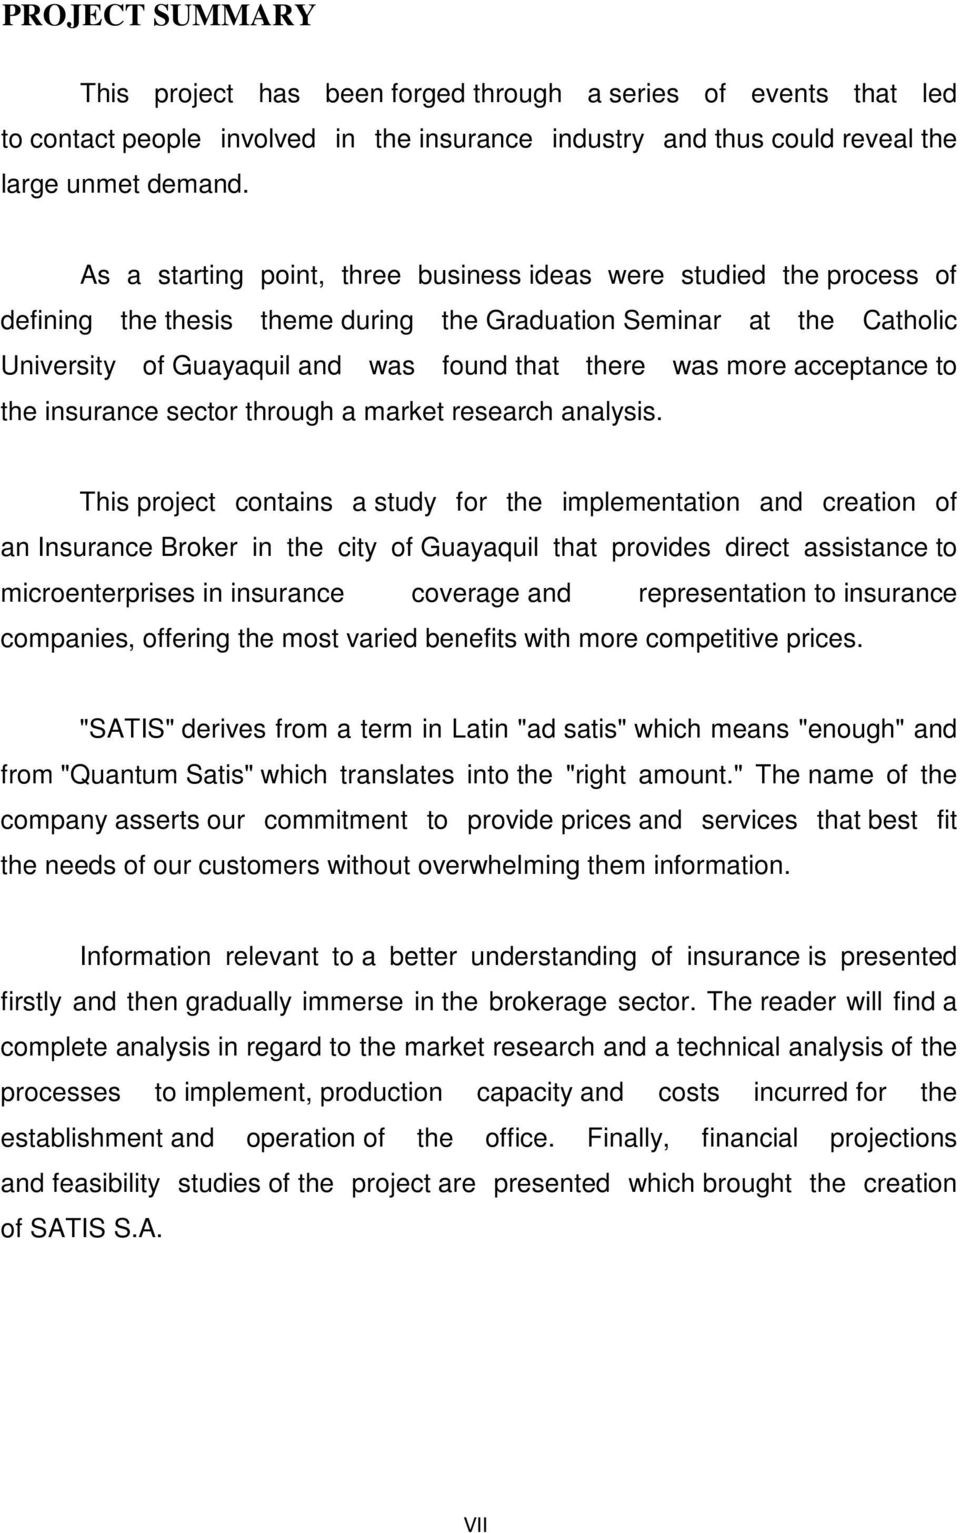 acceptance to the insurance sector through a market research analysis.